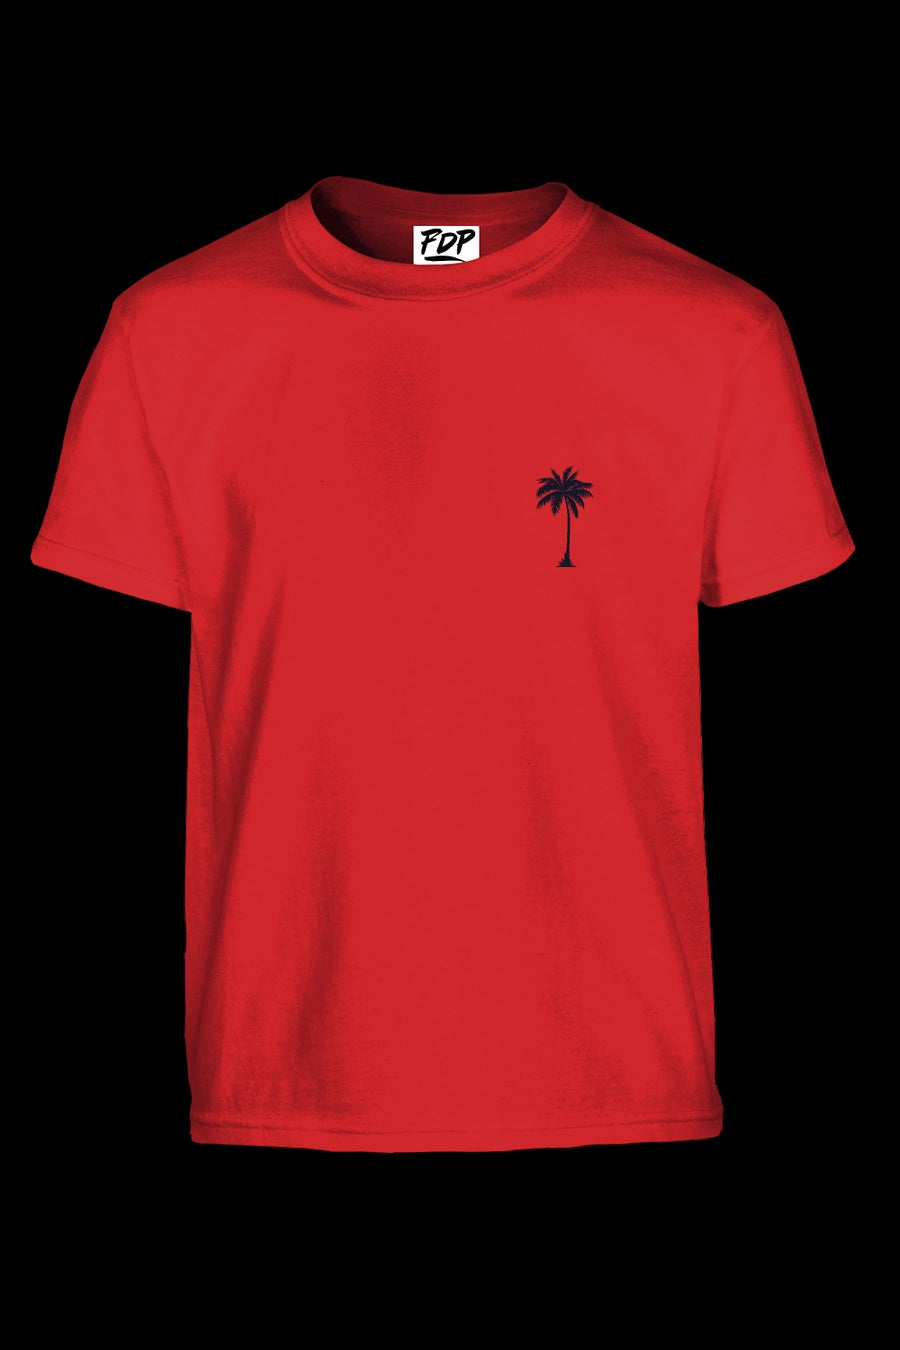 Image of FDP Tshirt Red Unisex